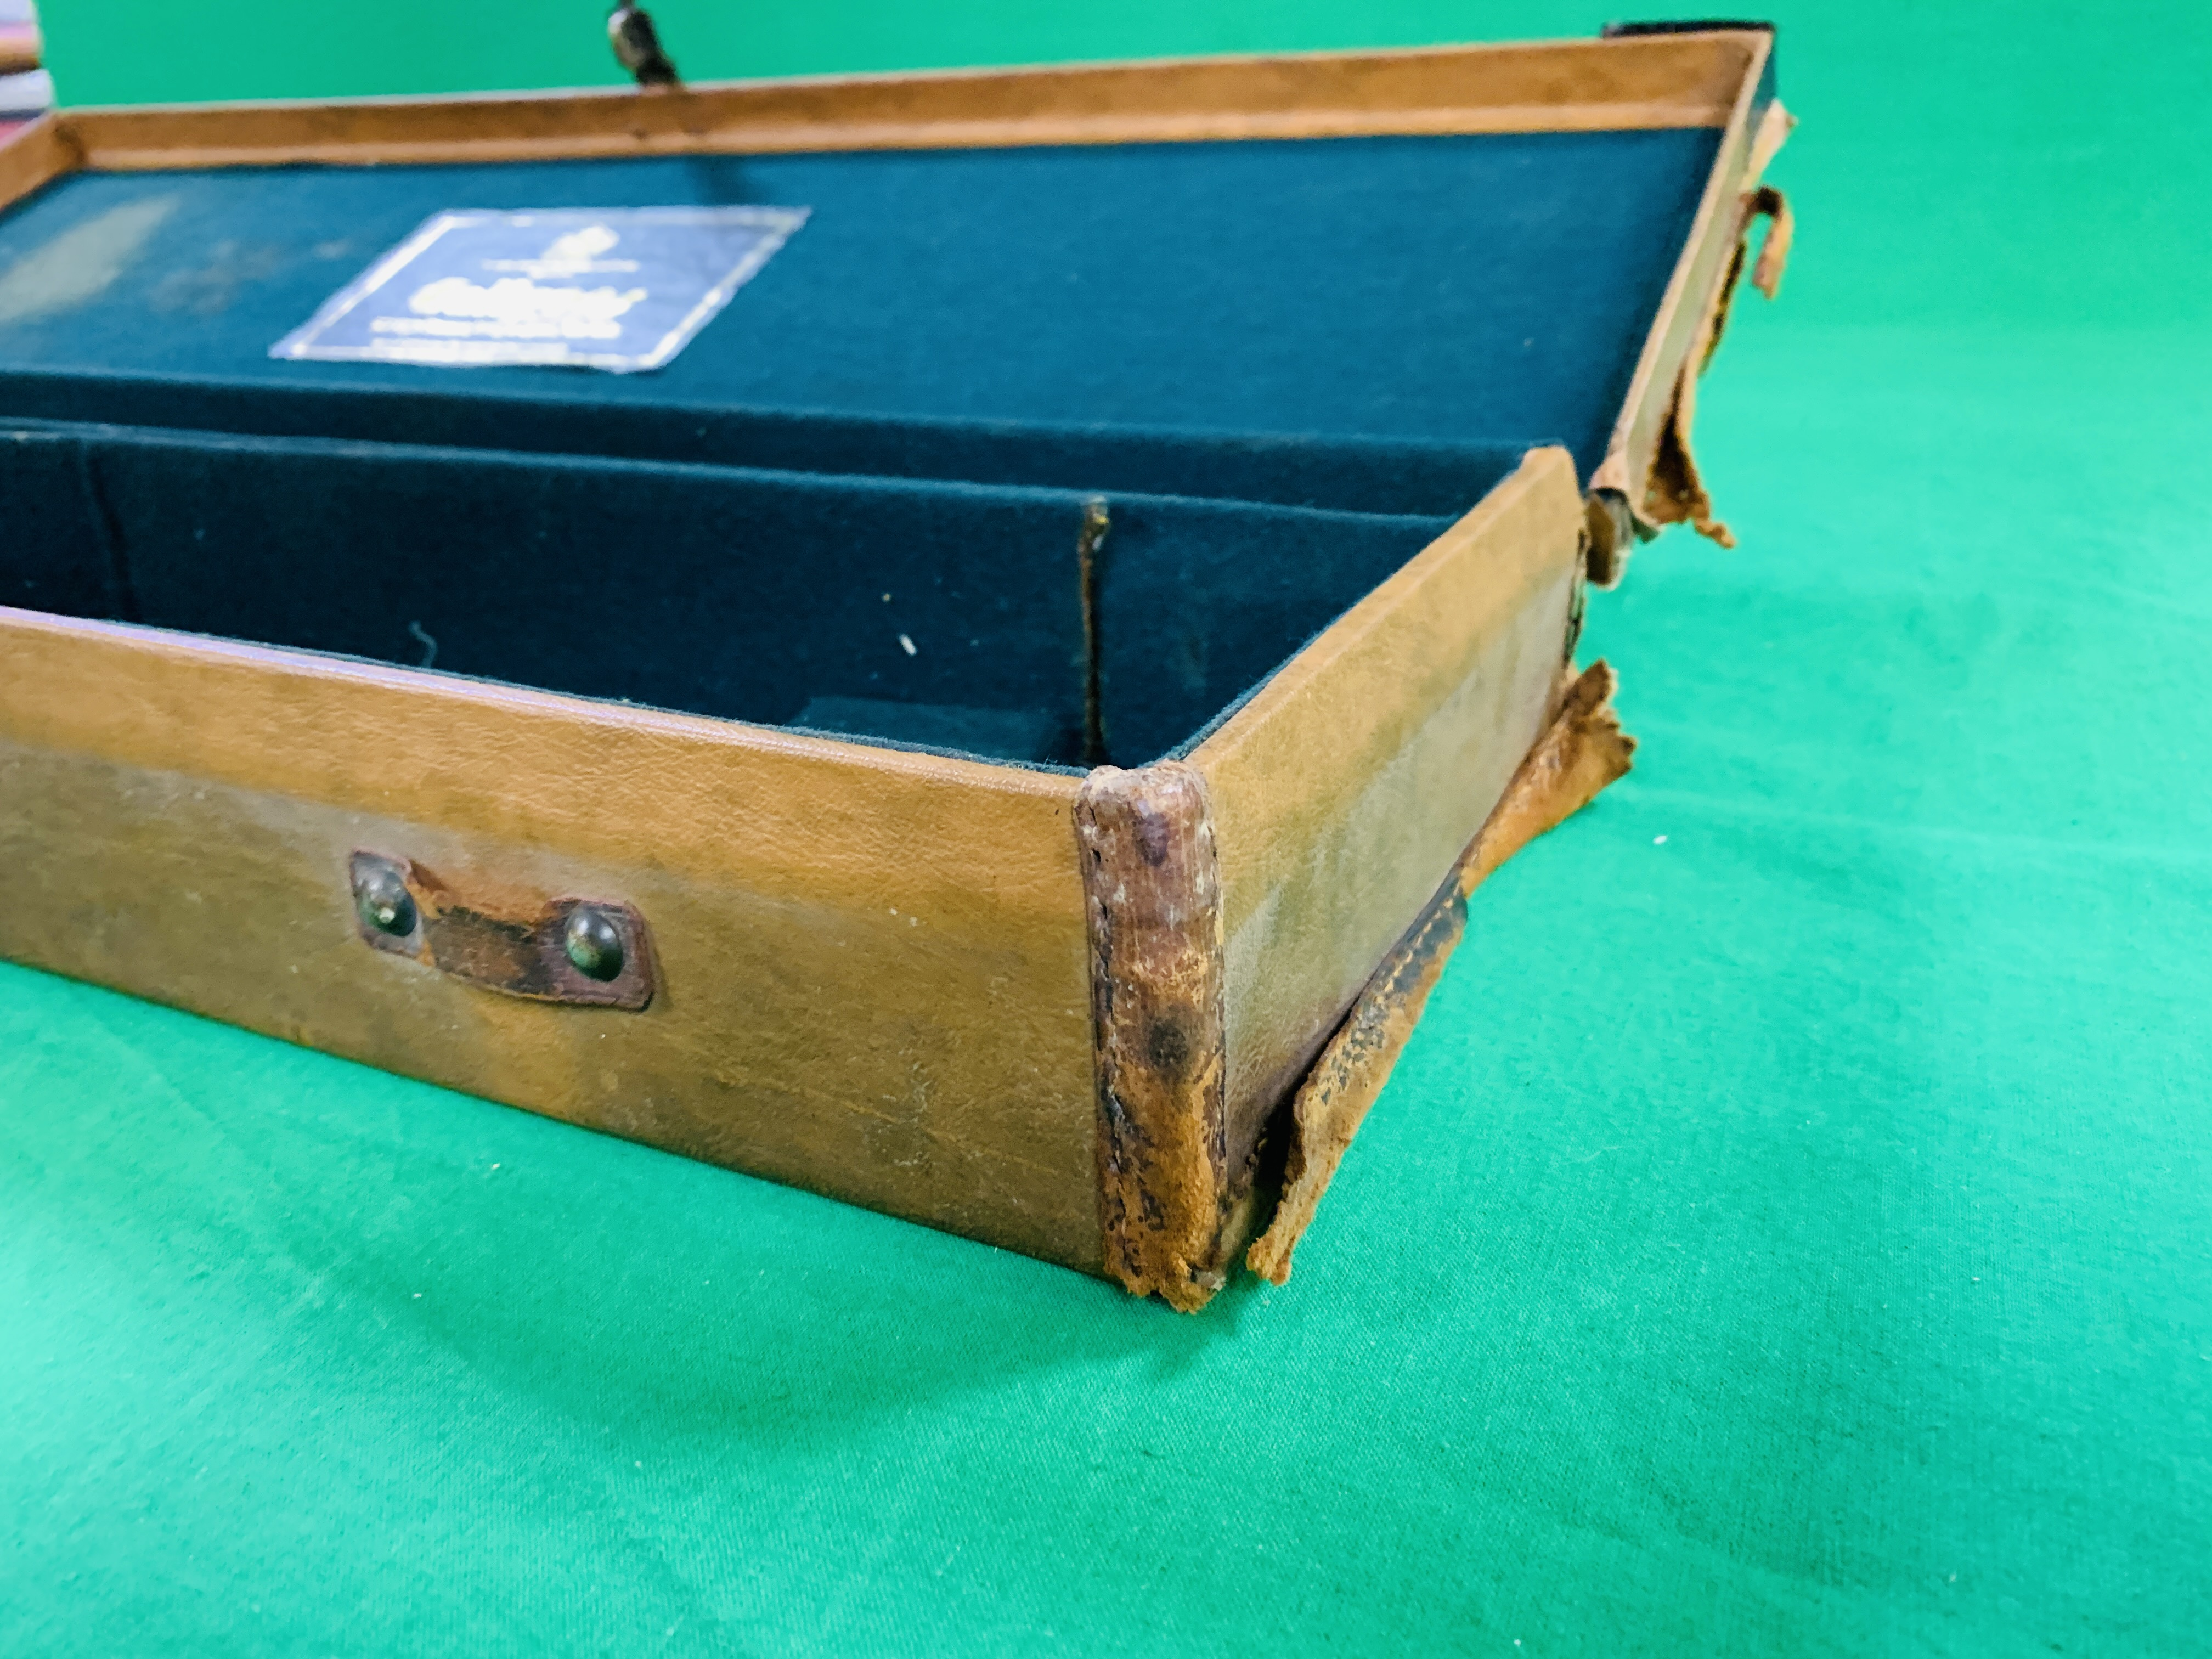 """LEATHERETTE 28 / 30"""" CASE WITH GALLYON OF KINGFISHER LABEL INSIDE - Image 8 of 11"""